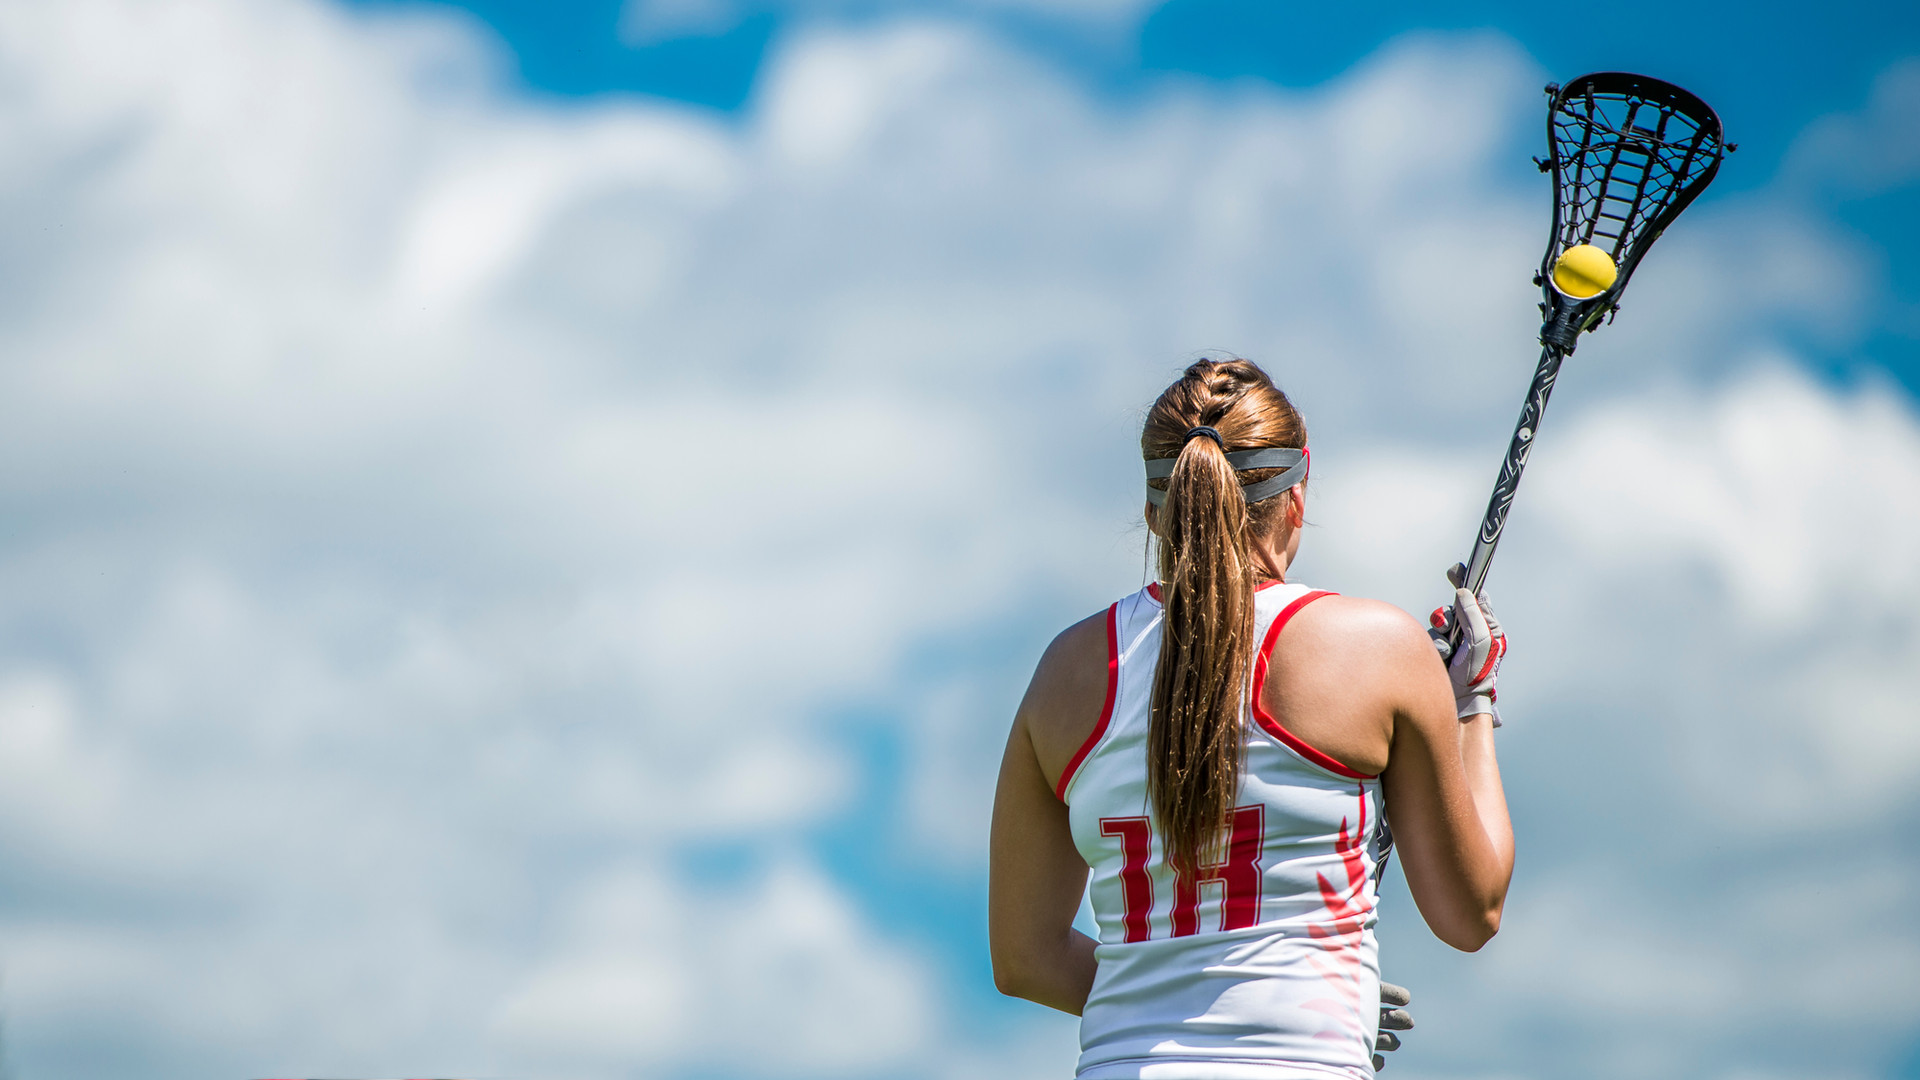 Women's lacrosse player against  the sky